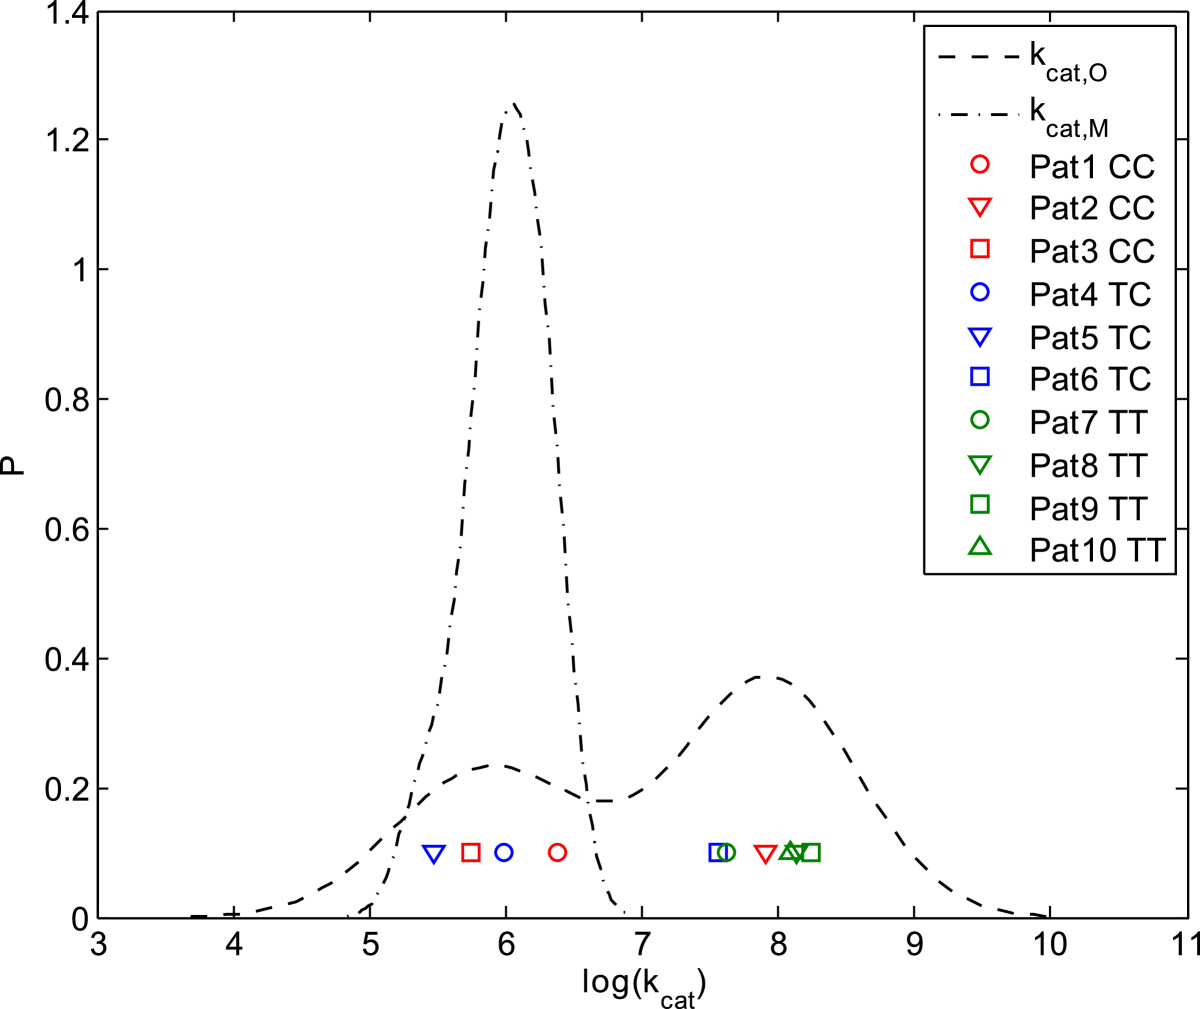 http://static-content.springer.com/image/art%3A10.1186%2F2193-9616-1-6/MediaObjects/40203_2013_Article_6_Fig7_HTML.jpg